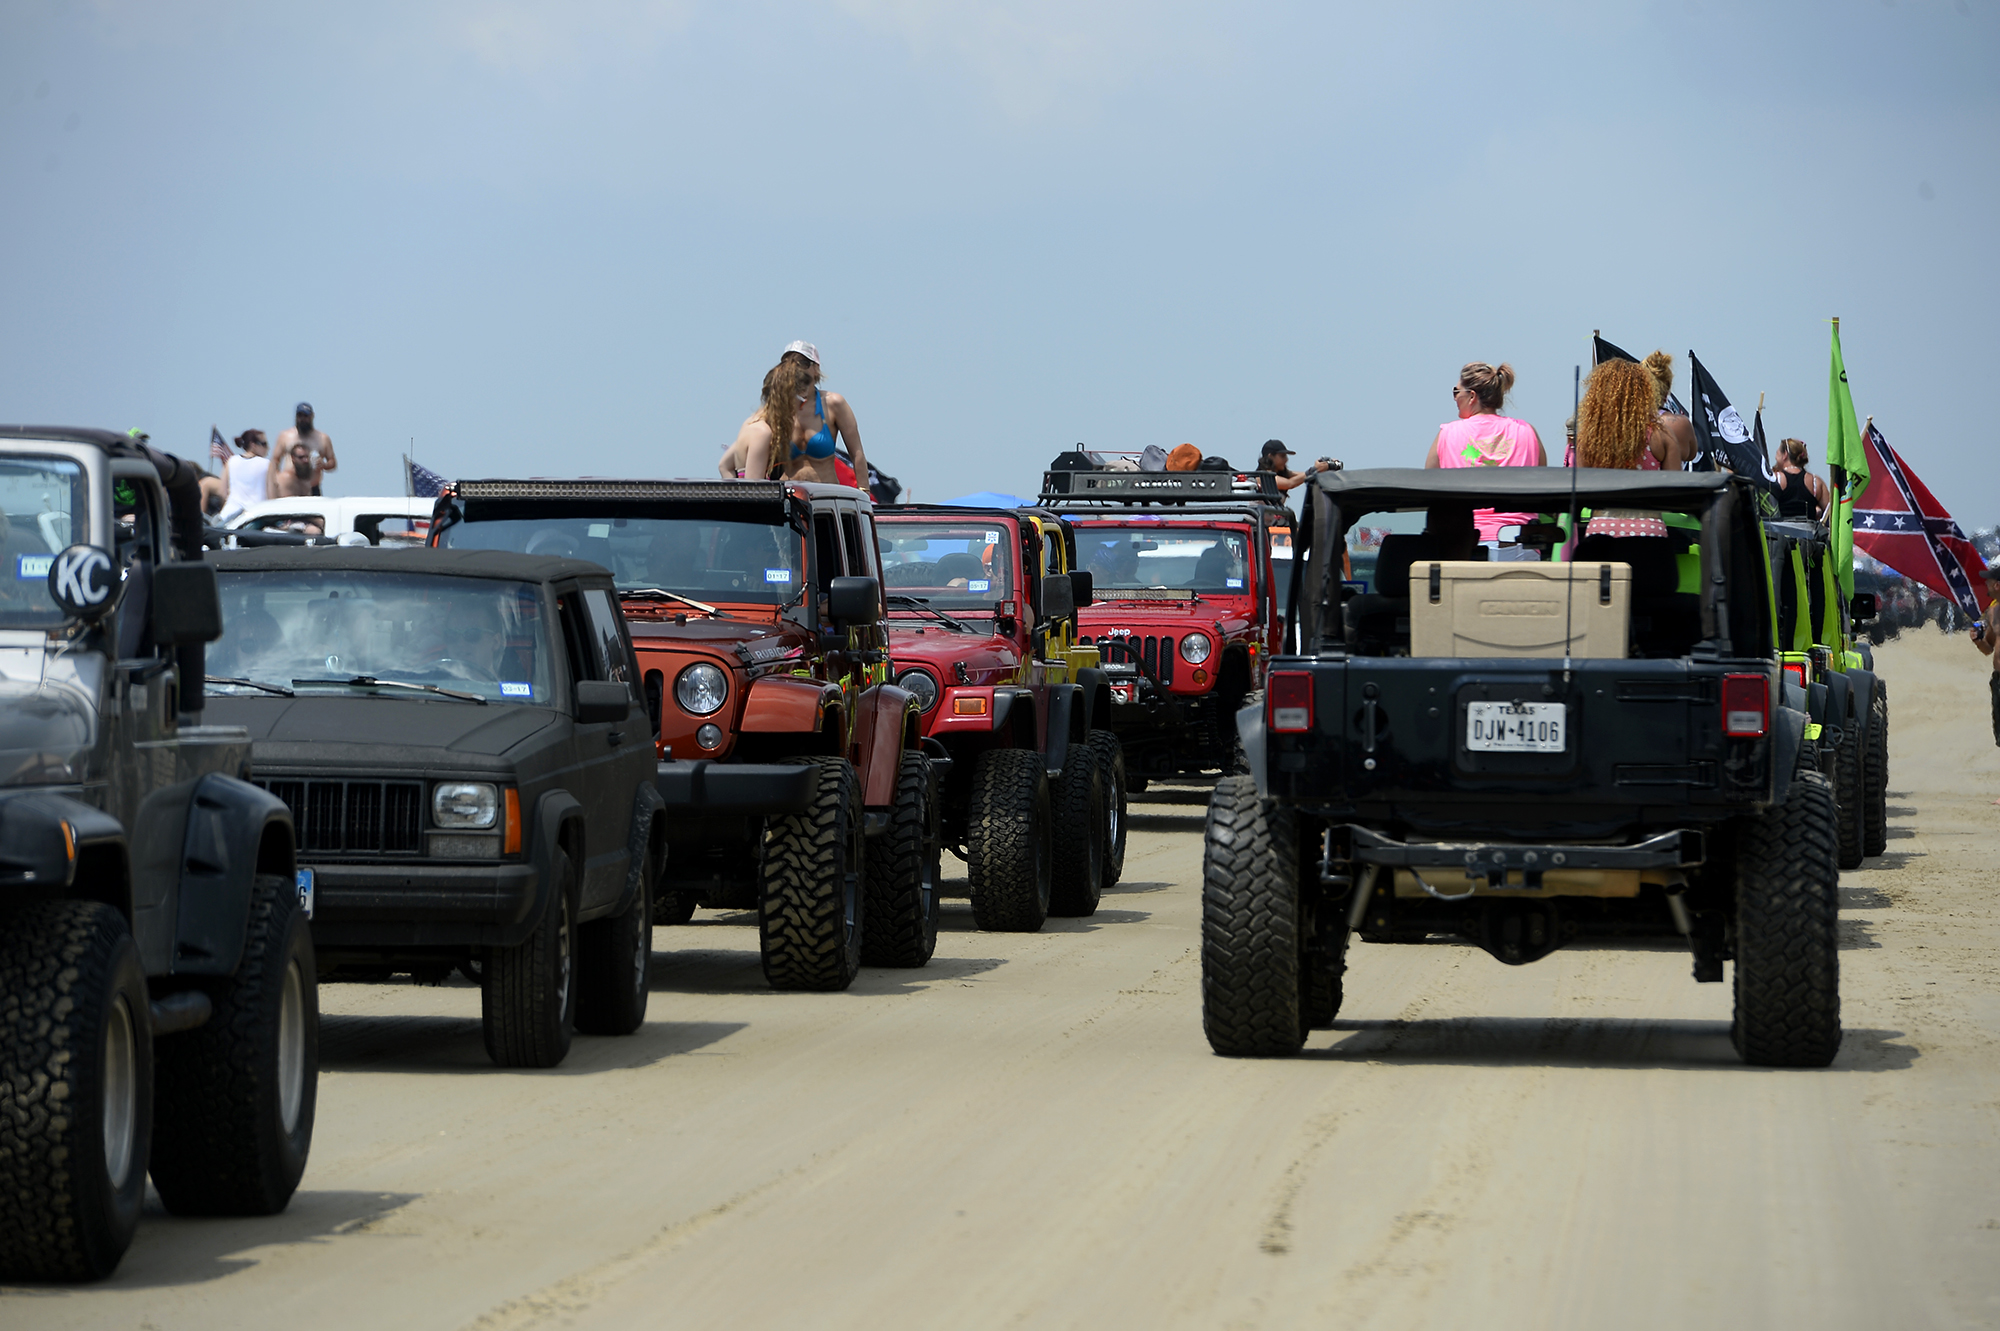 Texas Jeep enthusiasts flaunt custom rides during 'Go ...